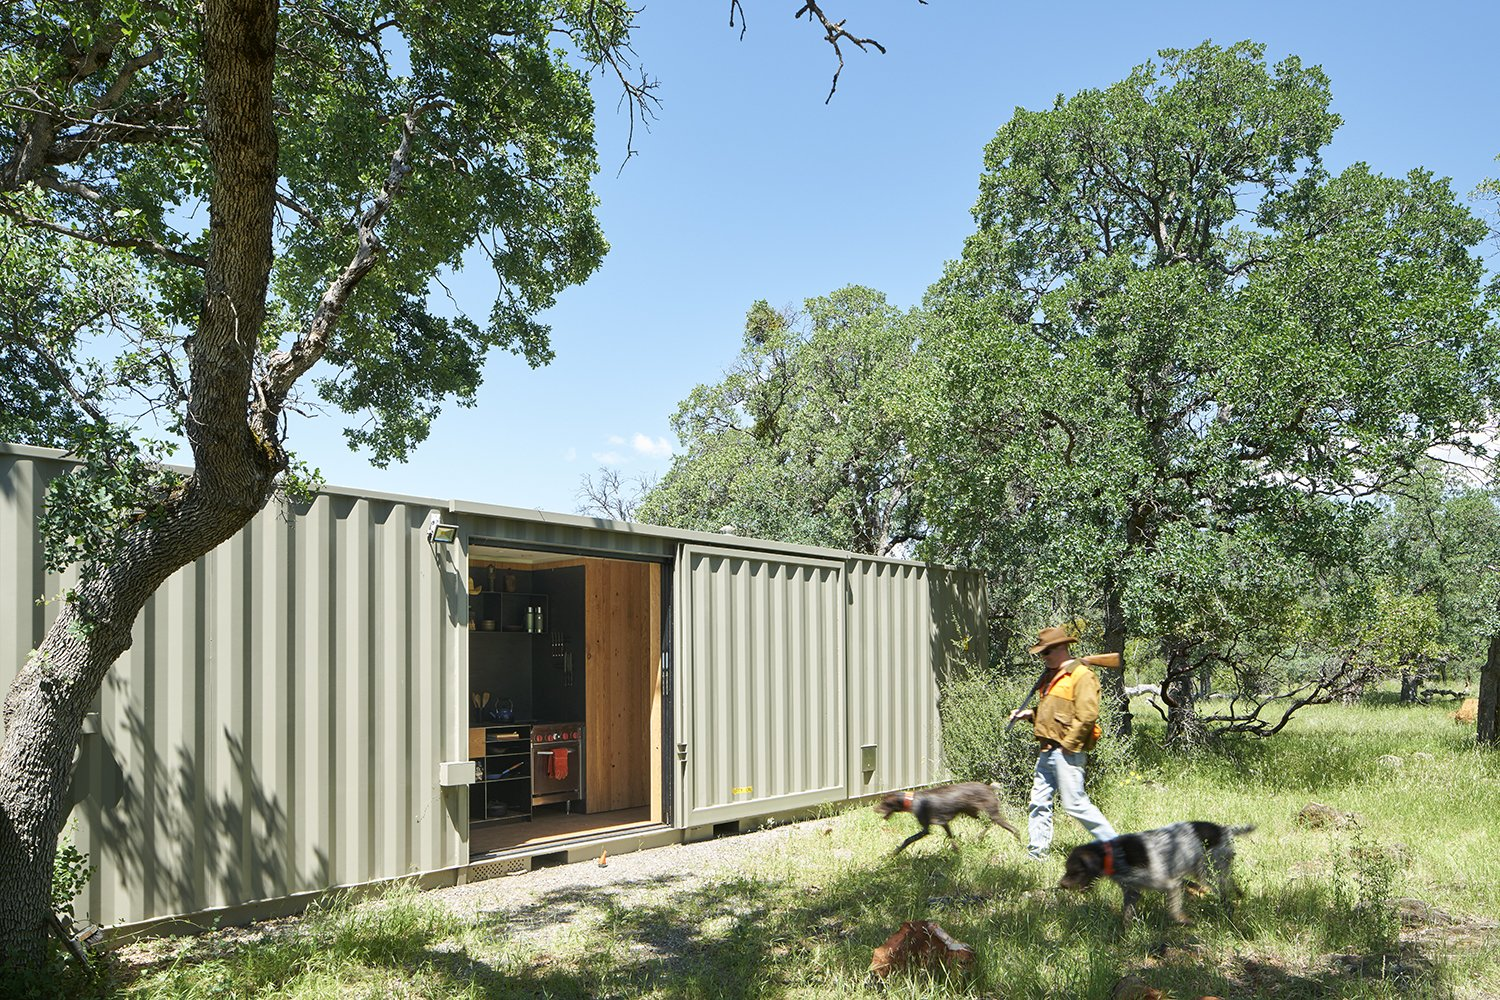 Exterior, Metal Roof Material, Shipping Container Building Type, Metal Siding Material, and Flat RoofLine Architect: Karen Mar, YAMAMAR Design, Location: Manton, California  Container Cabin by YAMAMAR Design